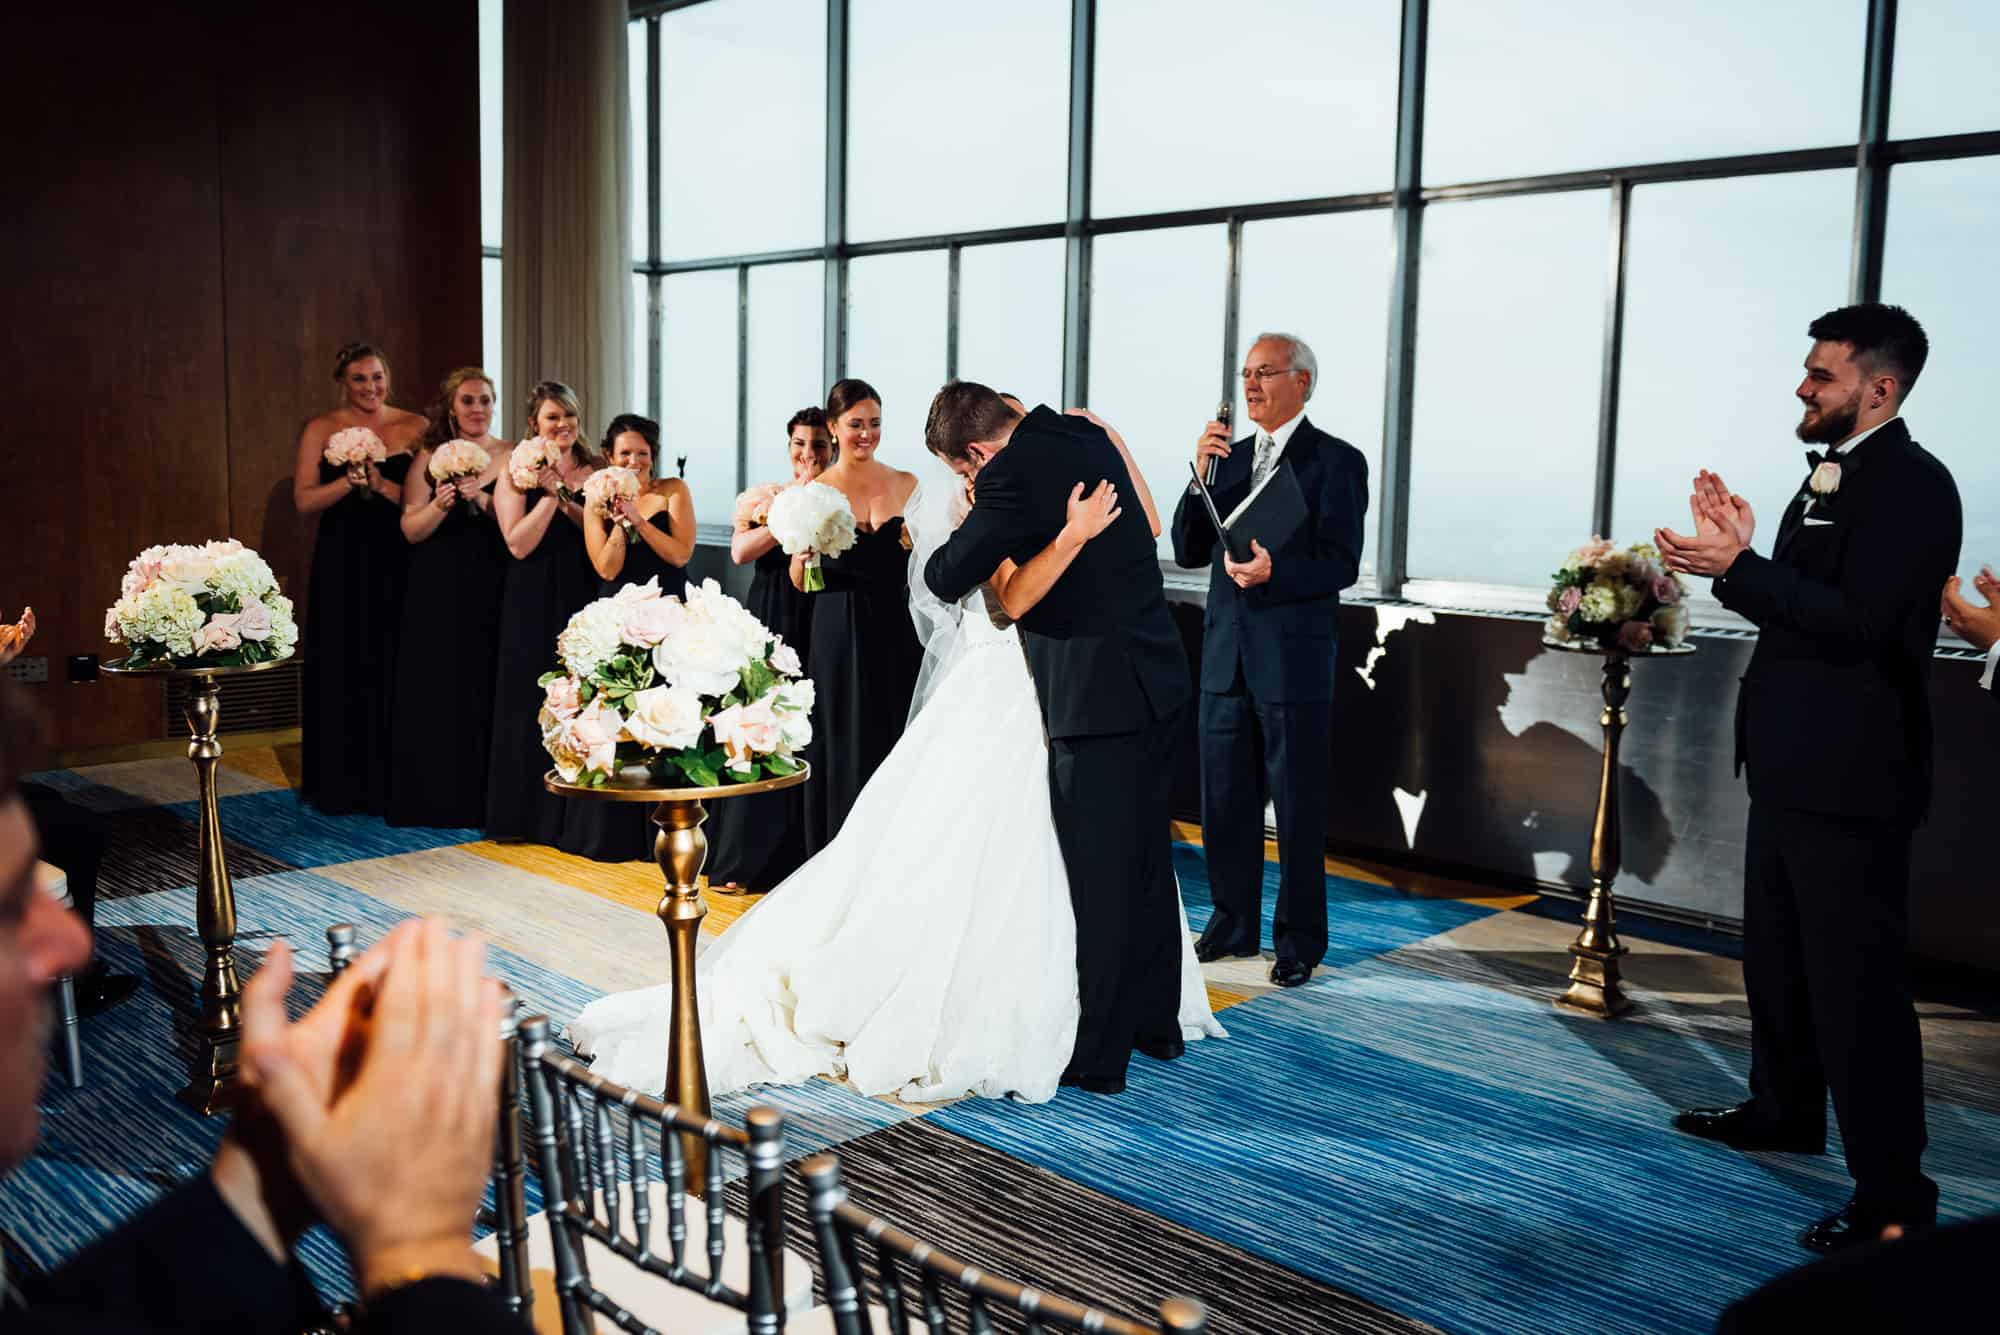 wedding ceremony at the Loews Hotel in Philadelphia